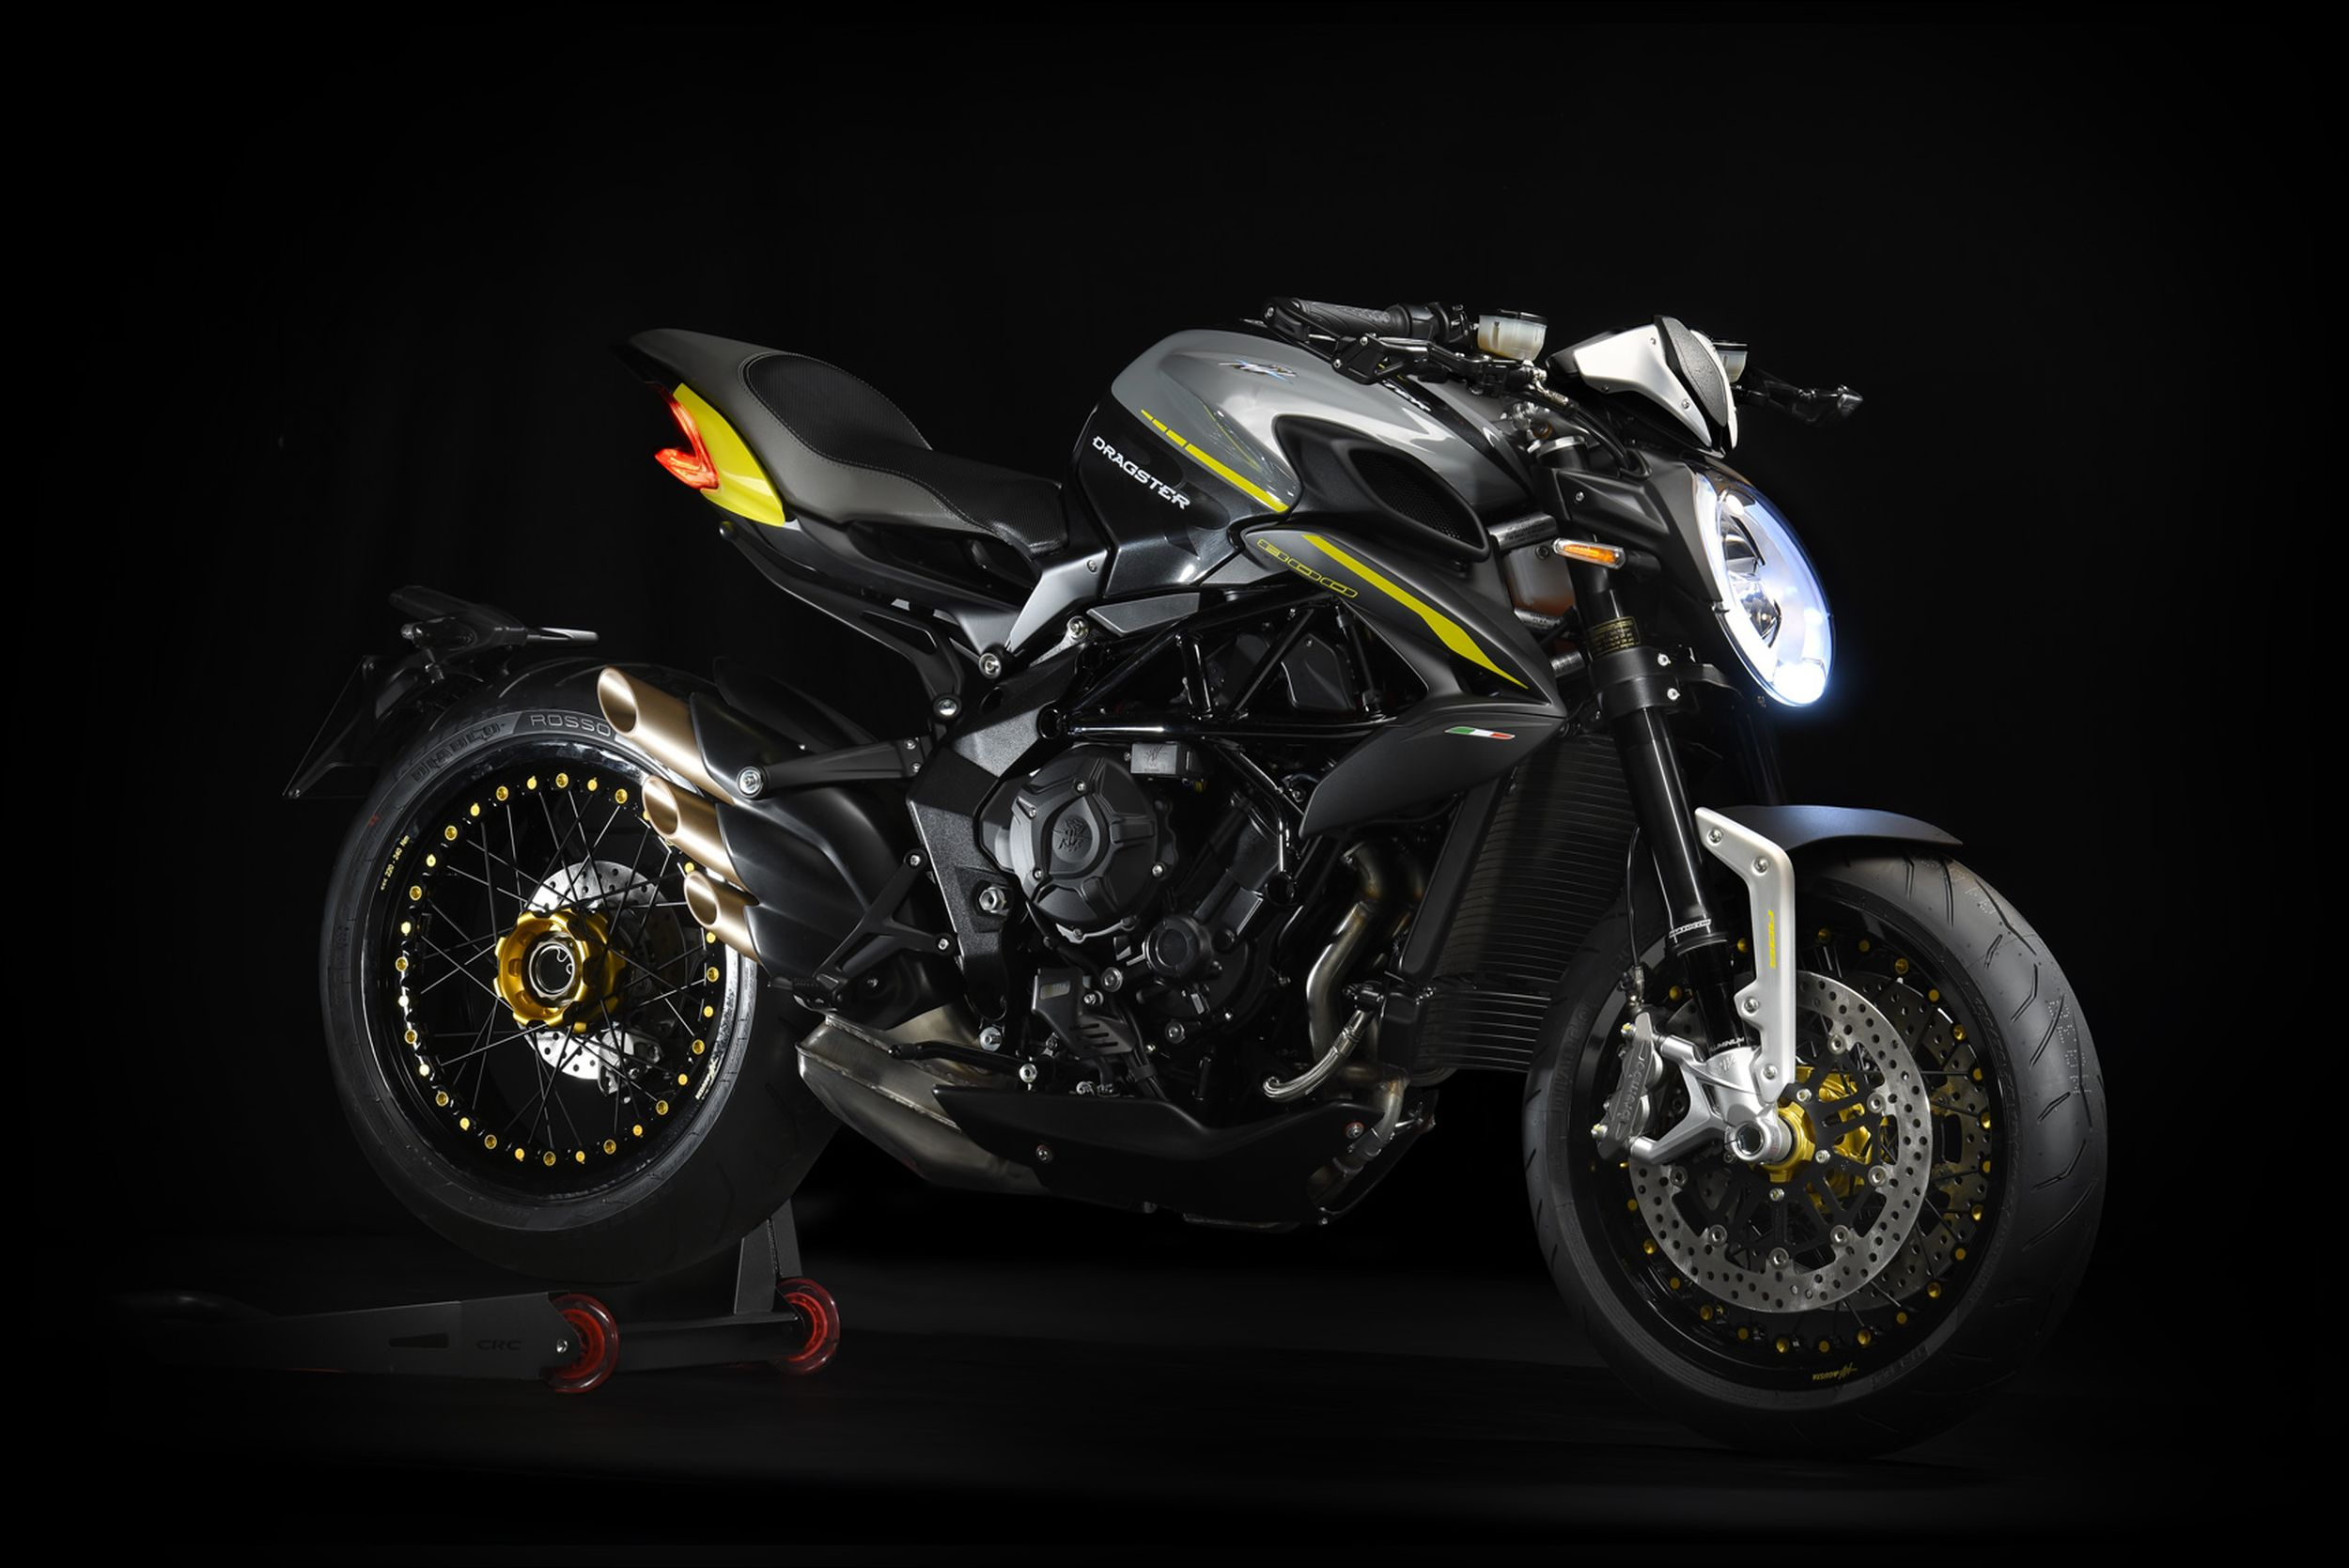 mv agusta dragster 800 rr alle technischen daten zum. Black Bedroom Furniture Sets. Home Design Ideas